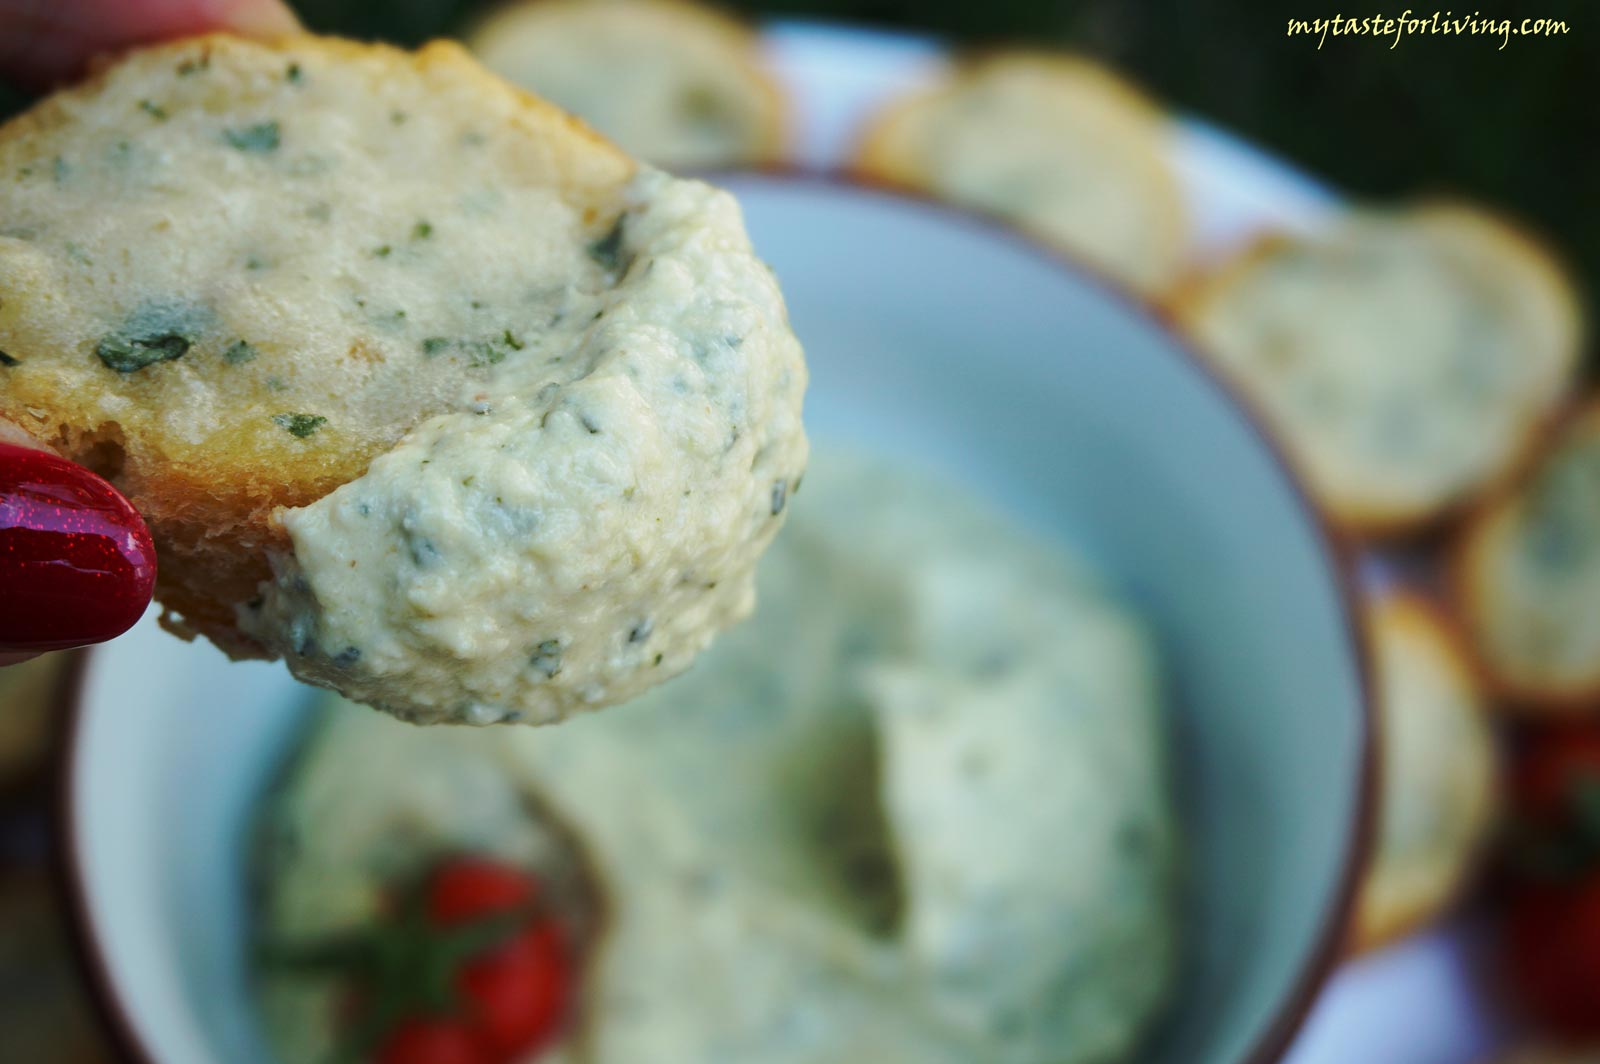 Appetizing dip made from roasted zucchini, tahini, sour cream, garlic and olive oil.